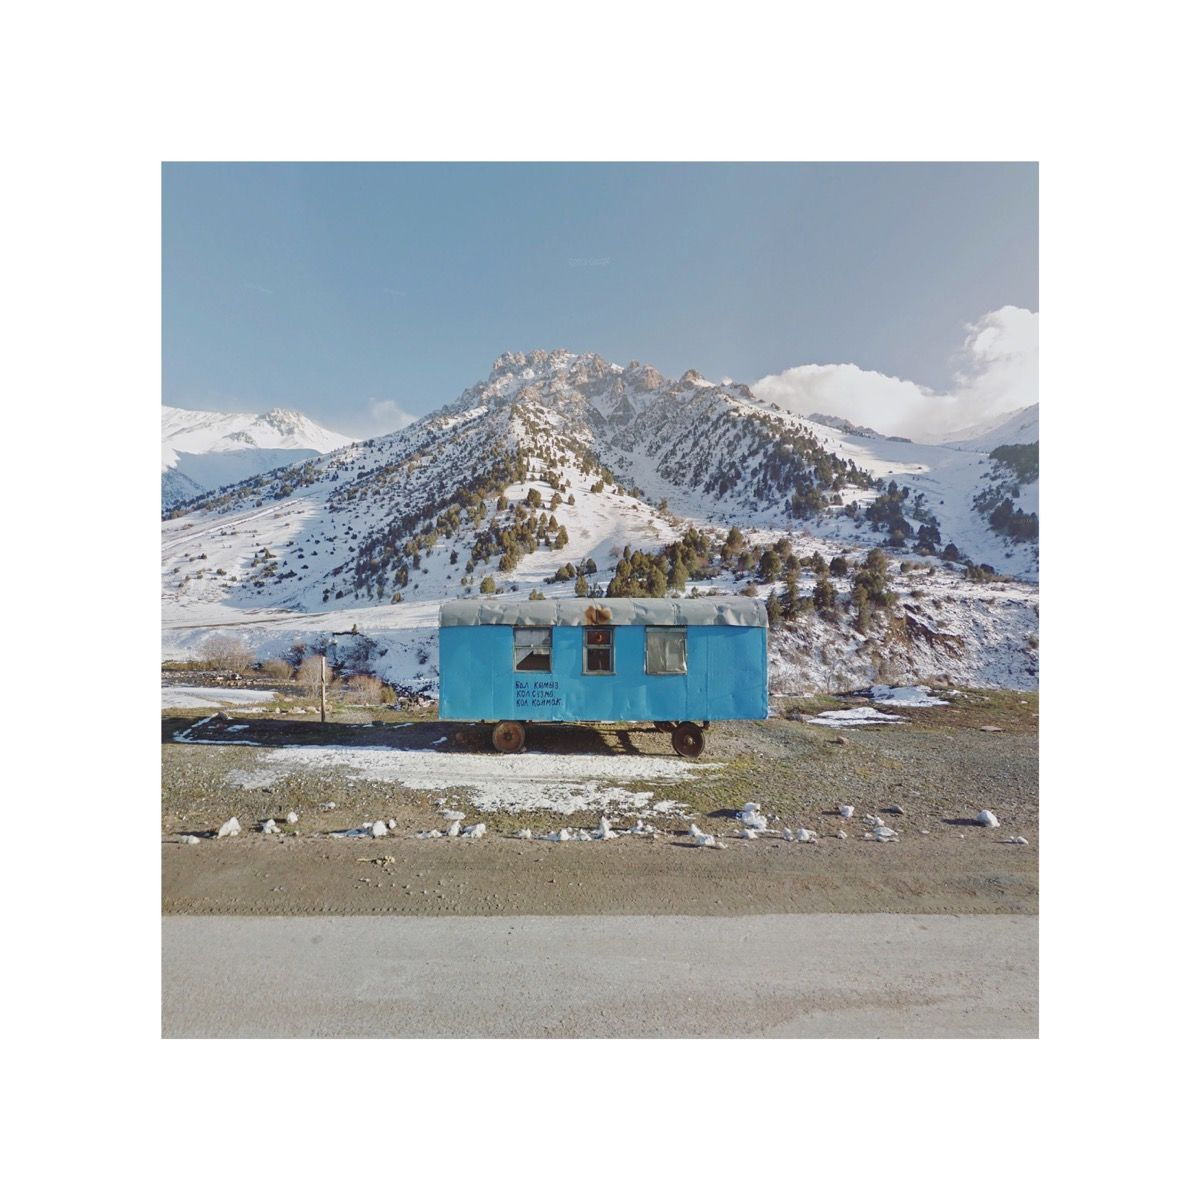 Mobile Home, Kyrgyzstan. Google Copyright/Created by Jacqui Kenny